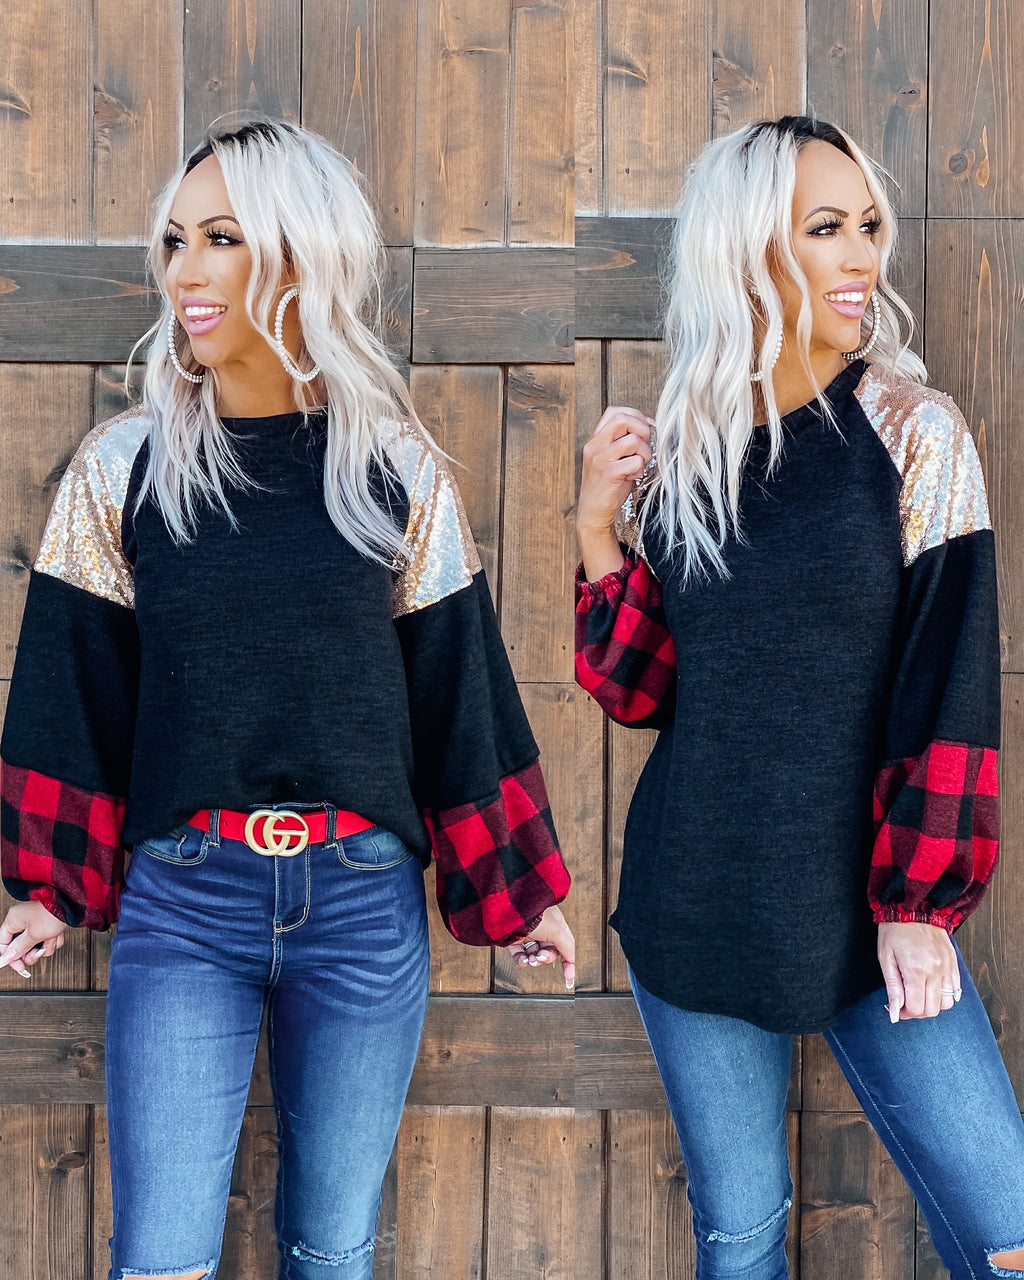 Peace & Joy Buffalo Plaid Sequin Top - Red